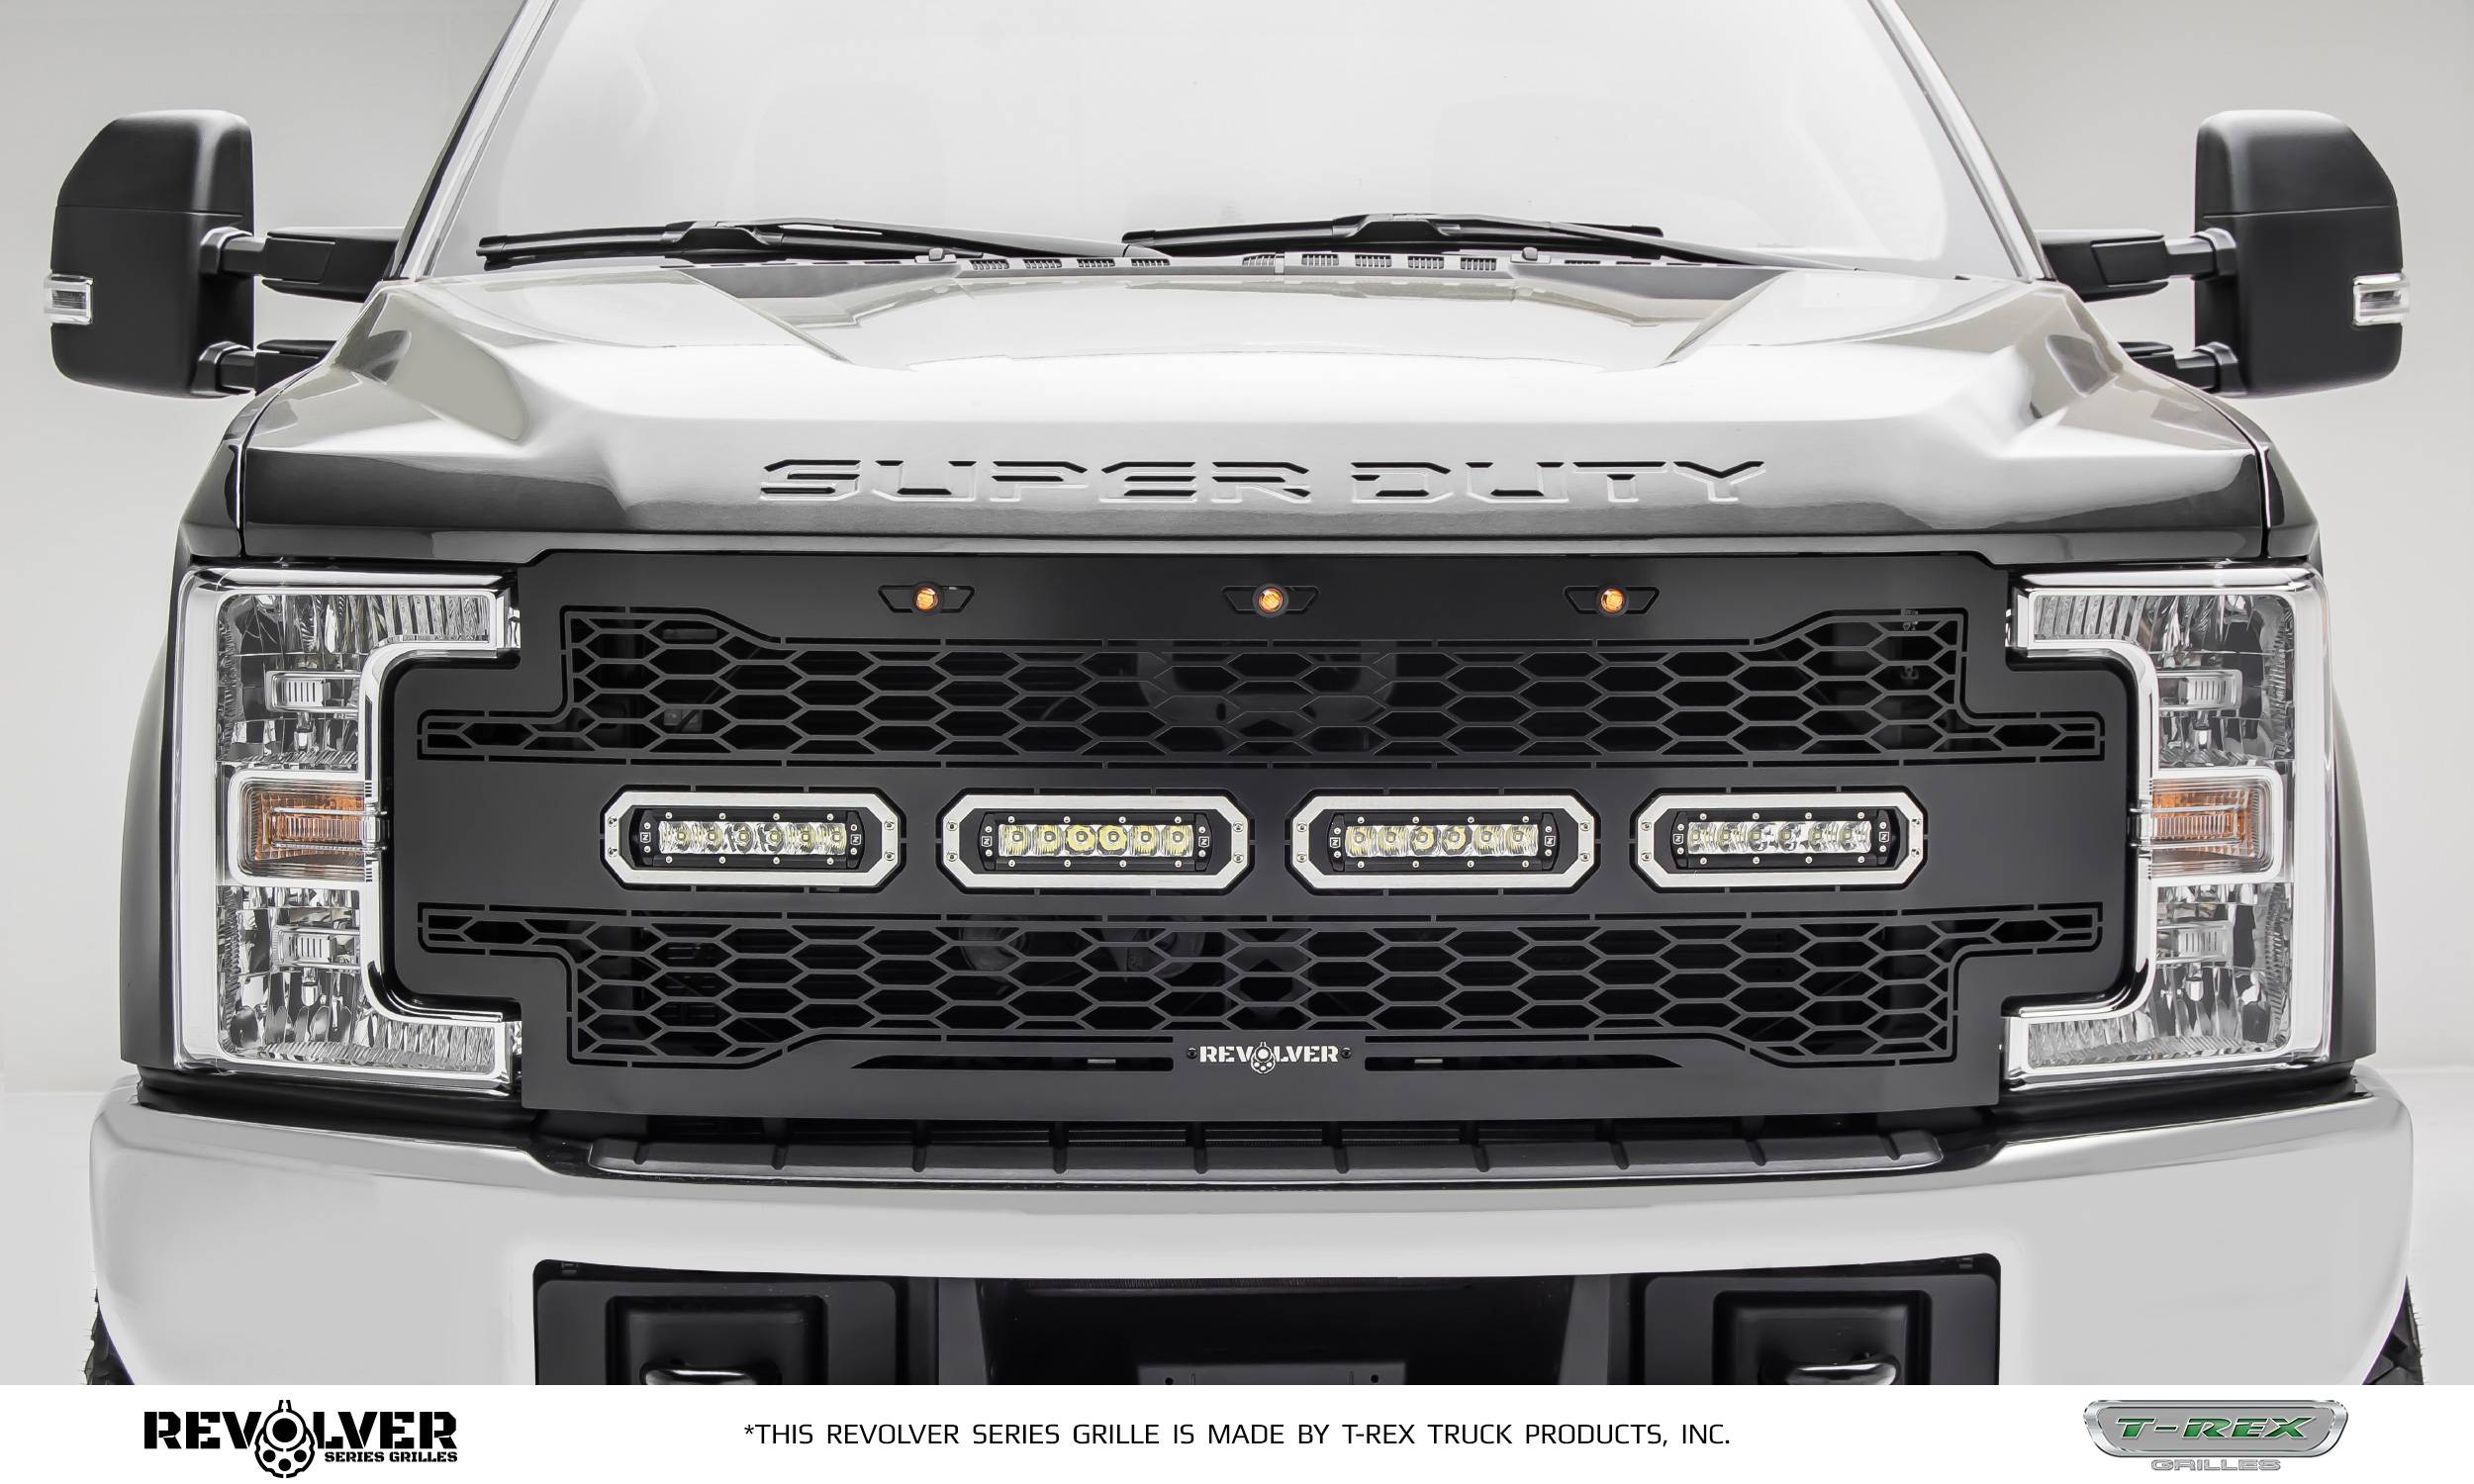 "T-REX GRILLES - 2017-2019 Super Duty Revolver Grille, Black, 1 Pc, Replacement, Chrome Studs with (4) 6"" LEDs, Does Not Fit Vehicles with Camera - PN #6515641"